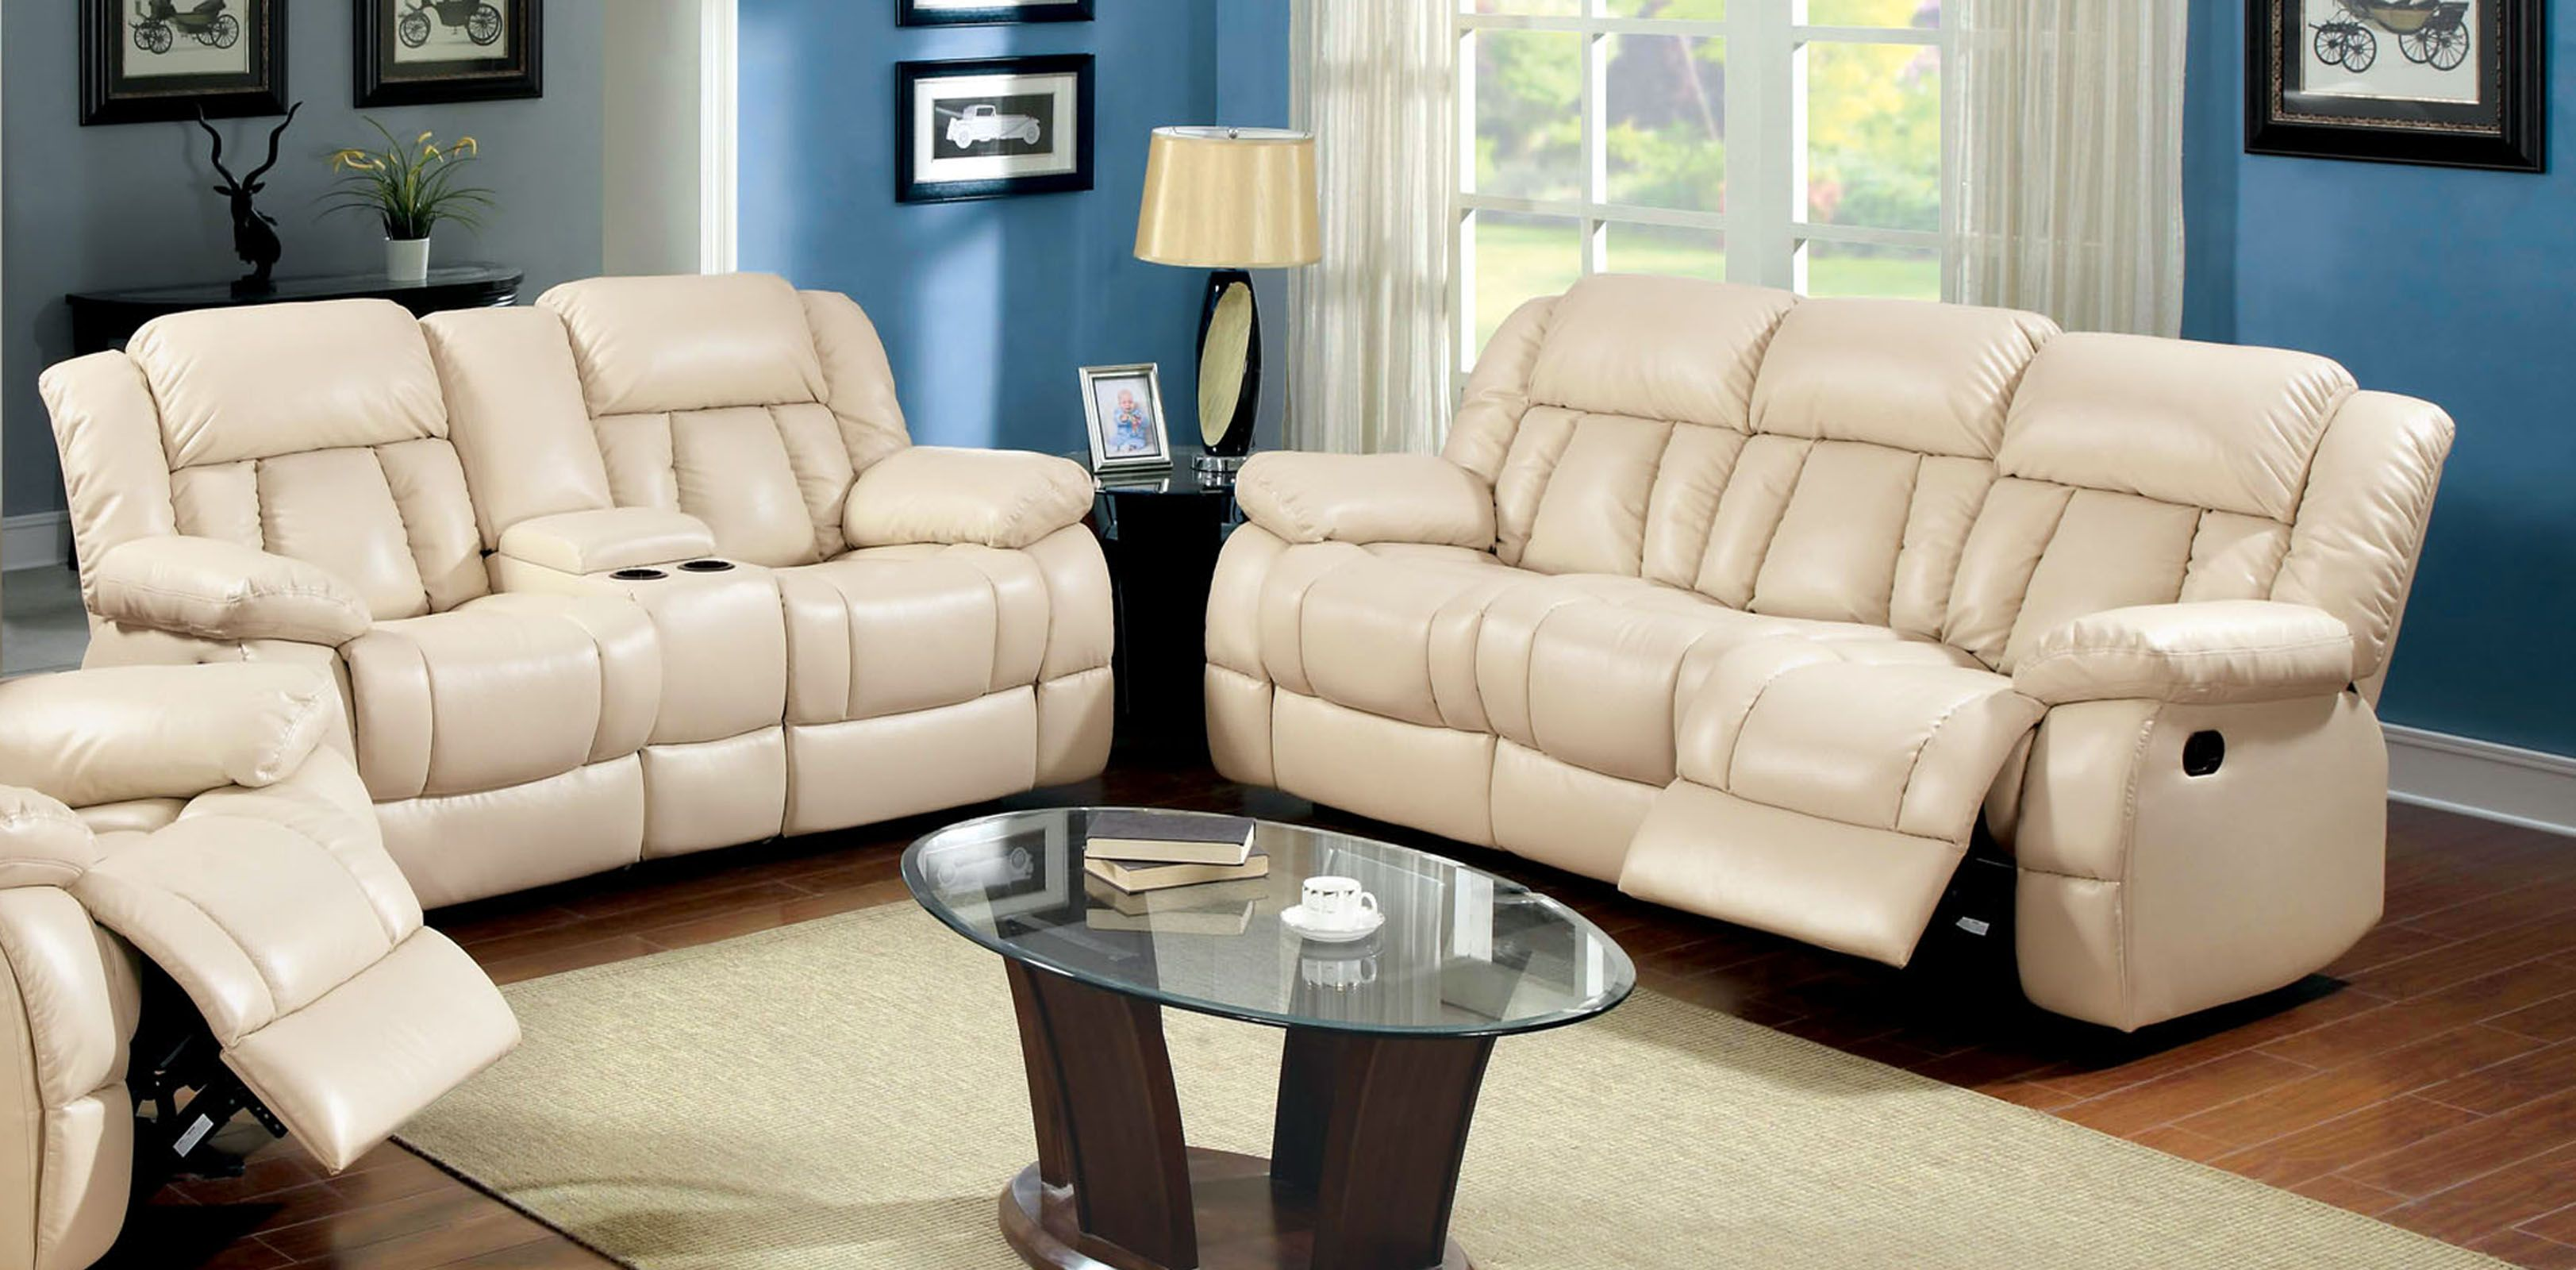 Furniture of america thaerin transitional bonded leather reclining 2 piece sofa set beige